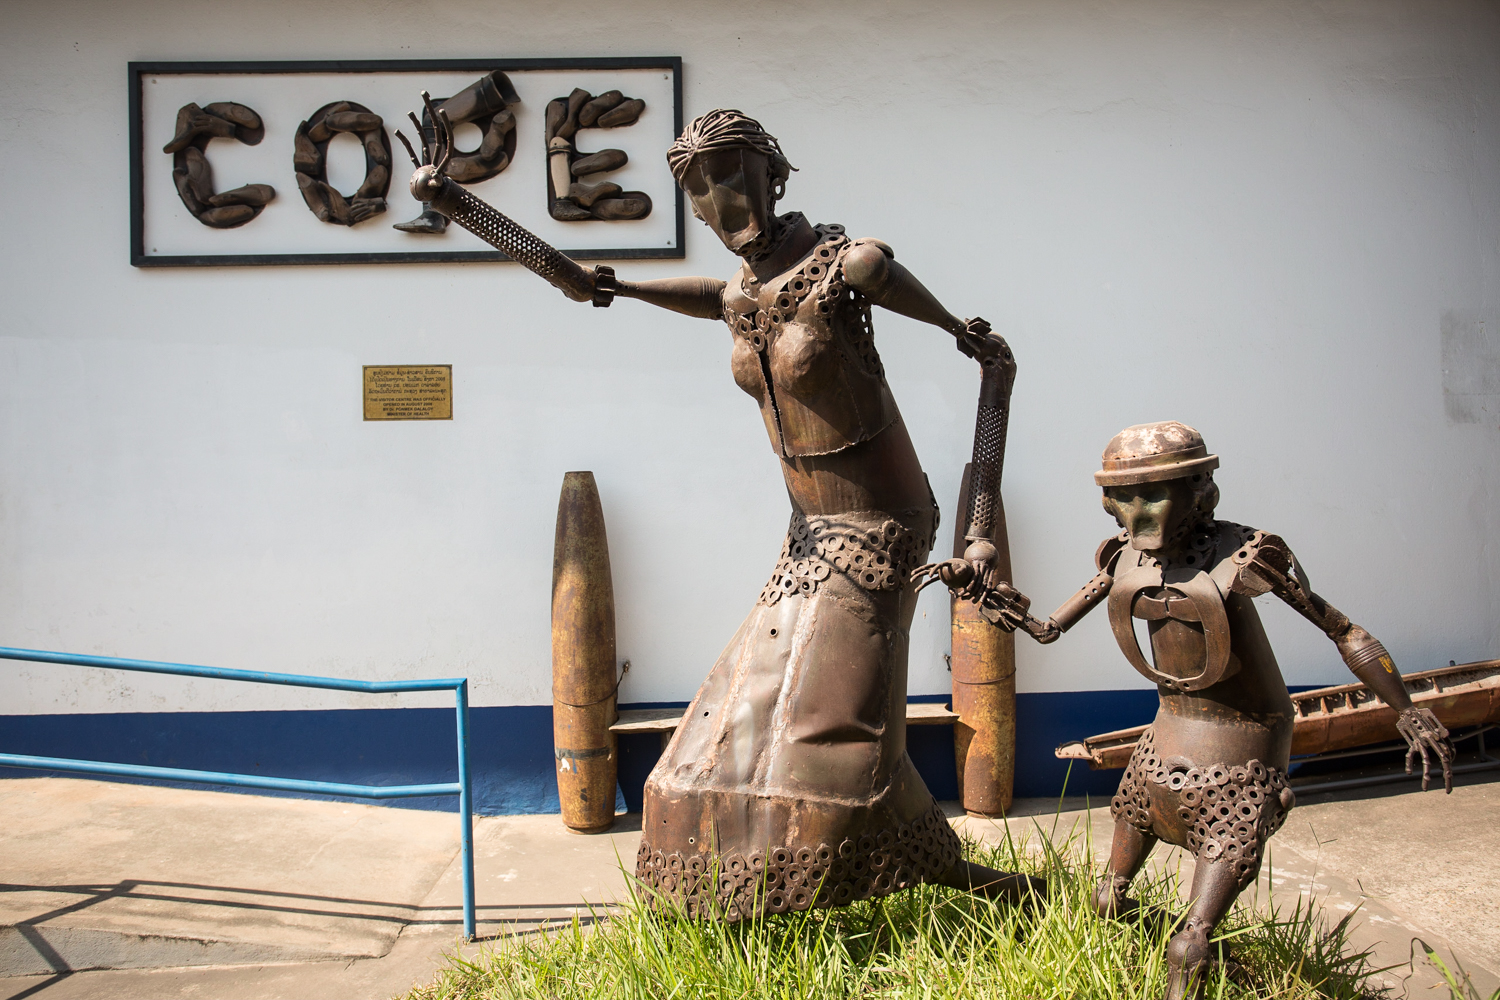 COPE Visitor Center. This statue,made from scraps of exploded ordinances,memorializes the victims of unexploded ordinances..